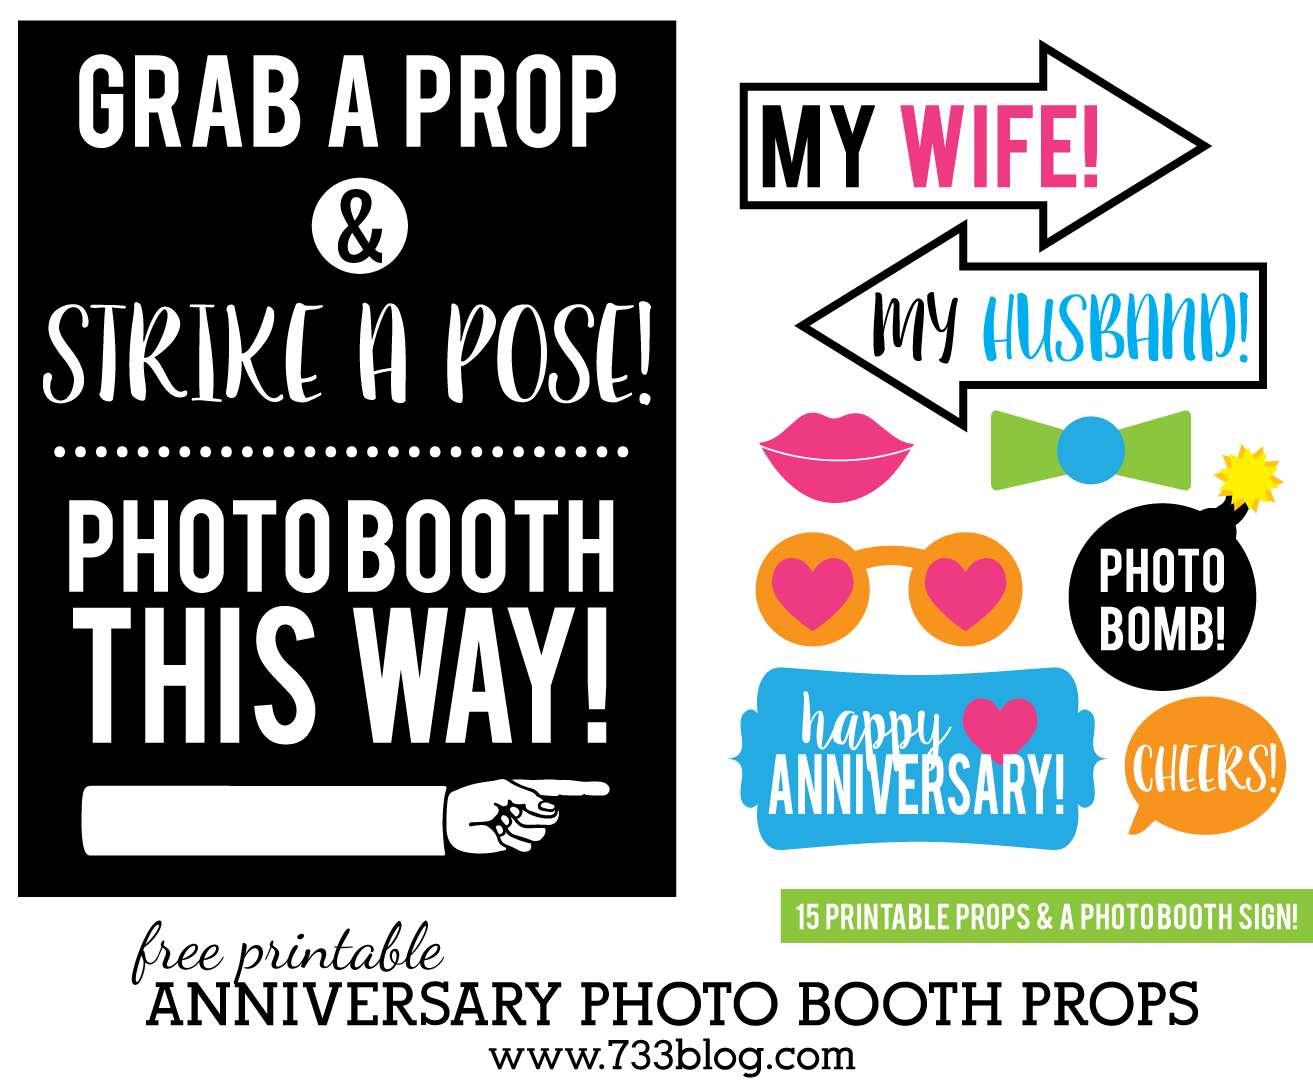 Printable Anniversary Photo Booth Props Inspiration Made